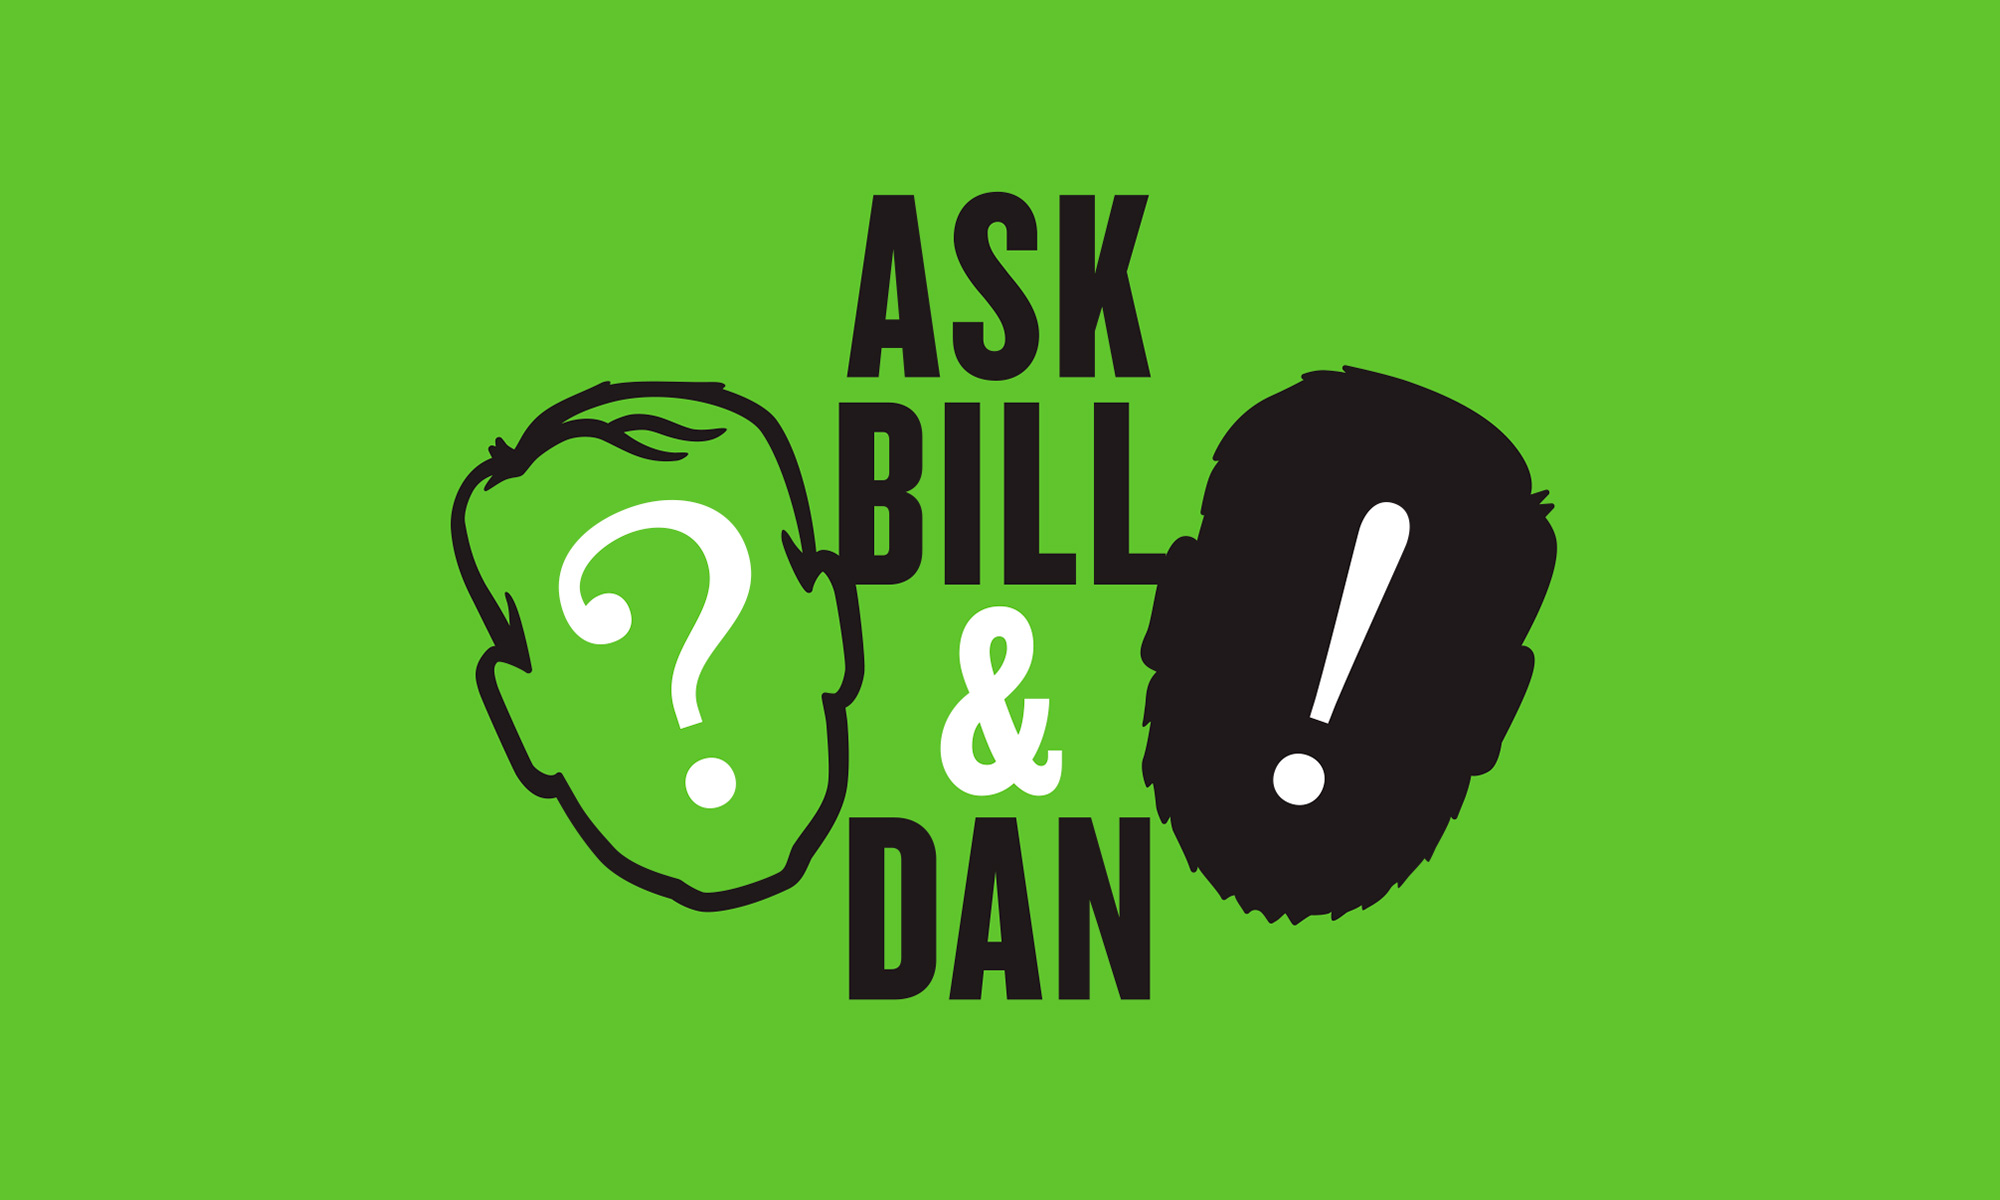 Ask Bill & Dan